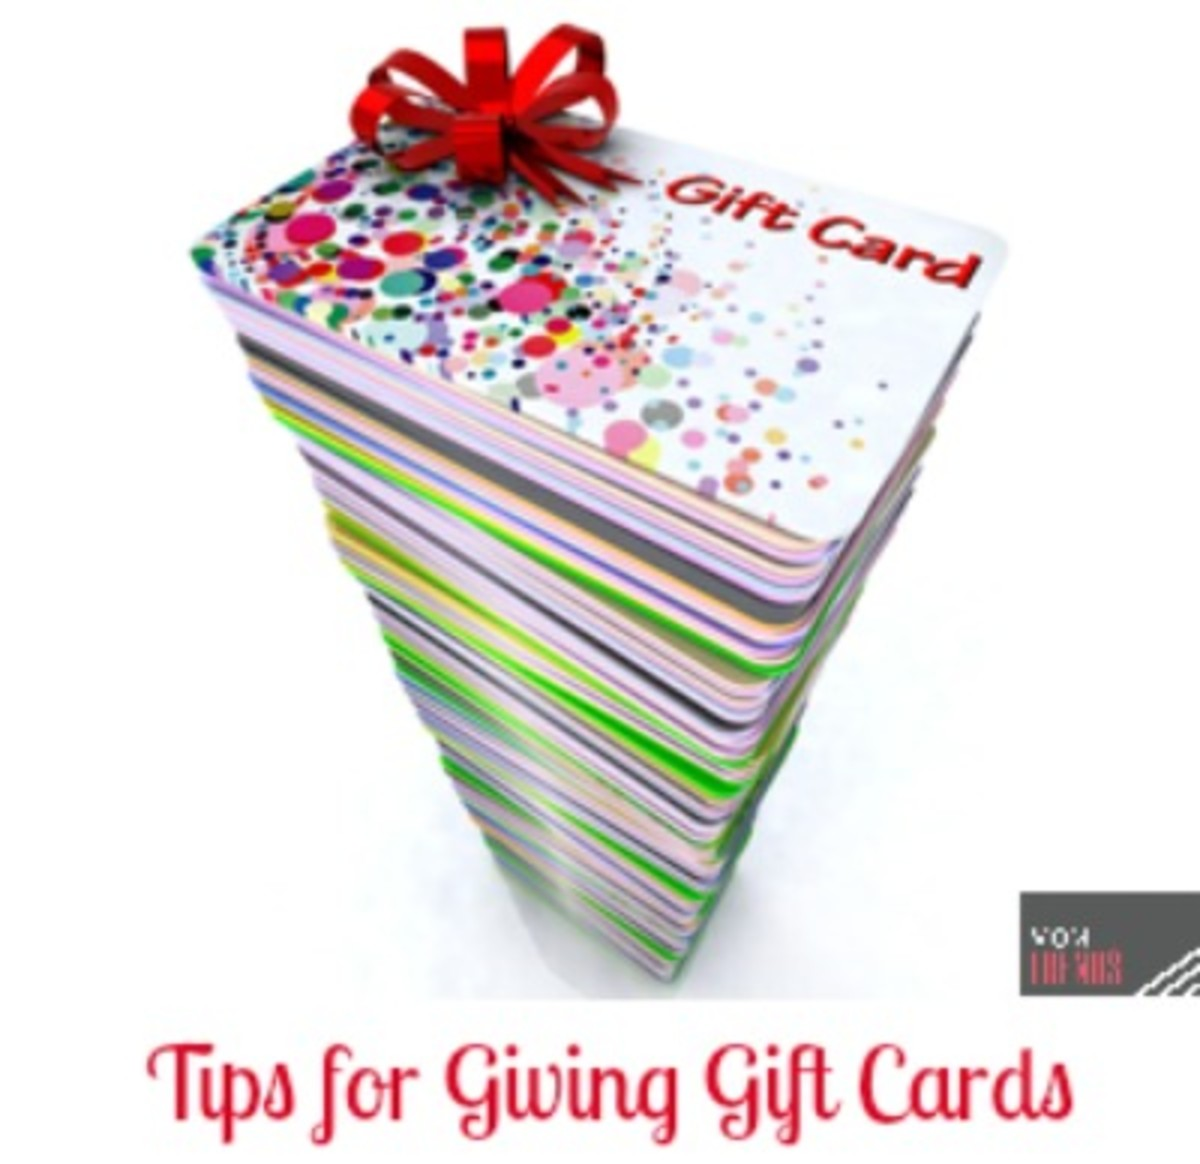 Giving Gift Cards